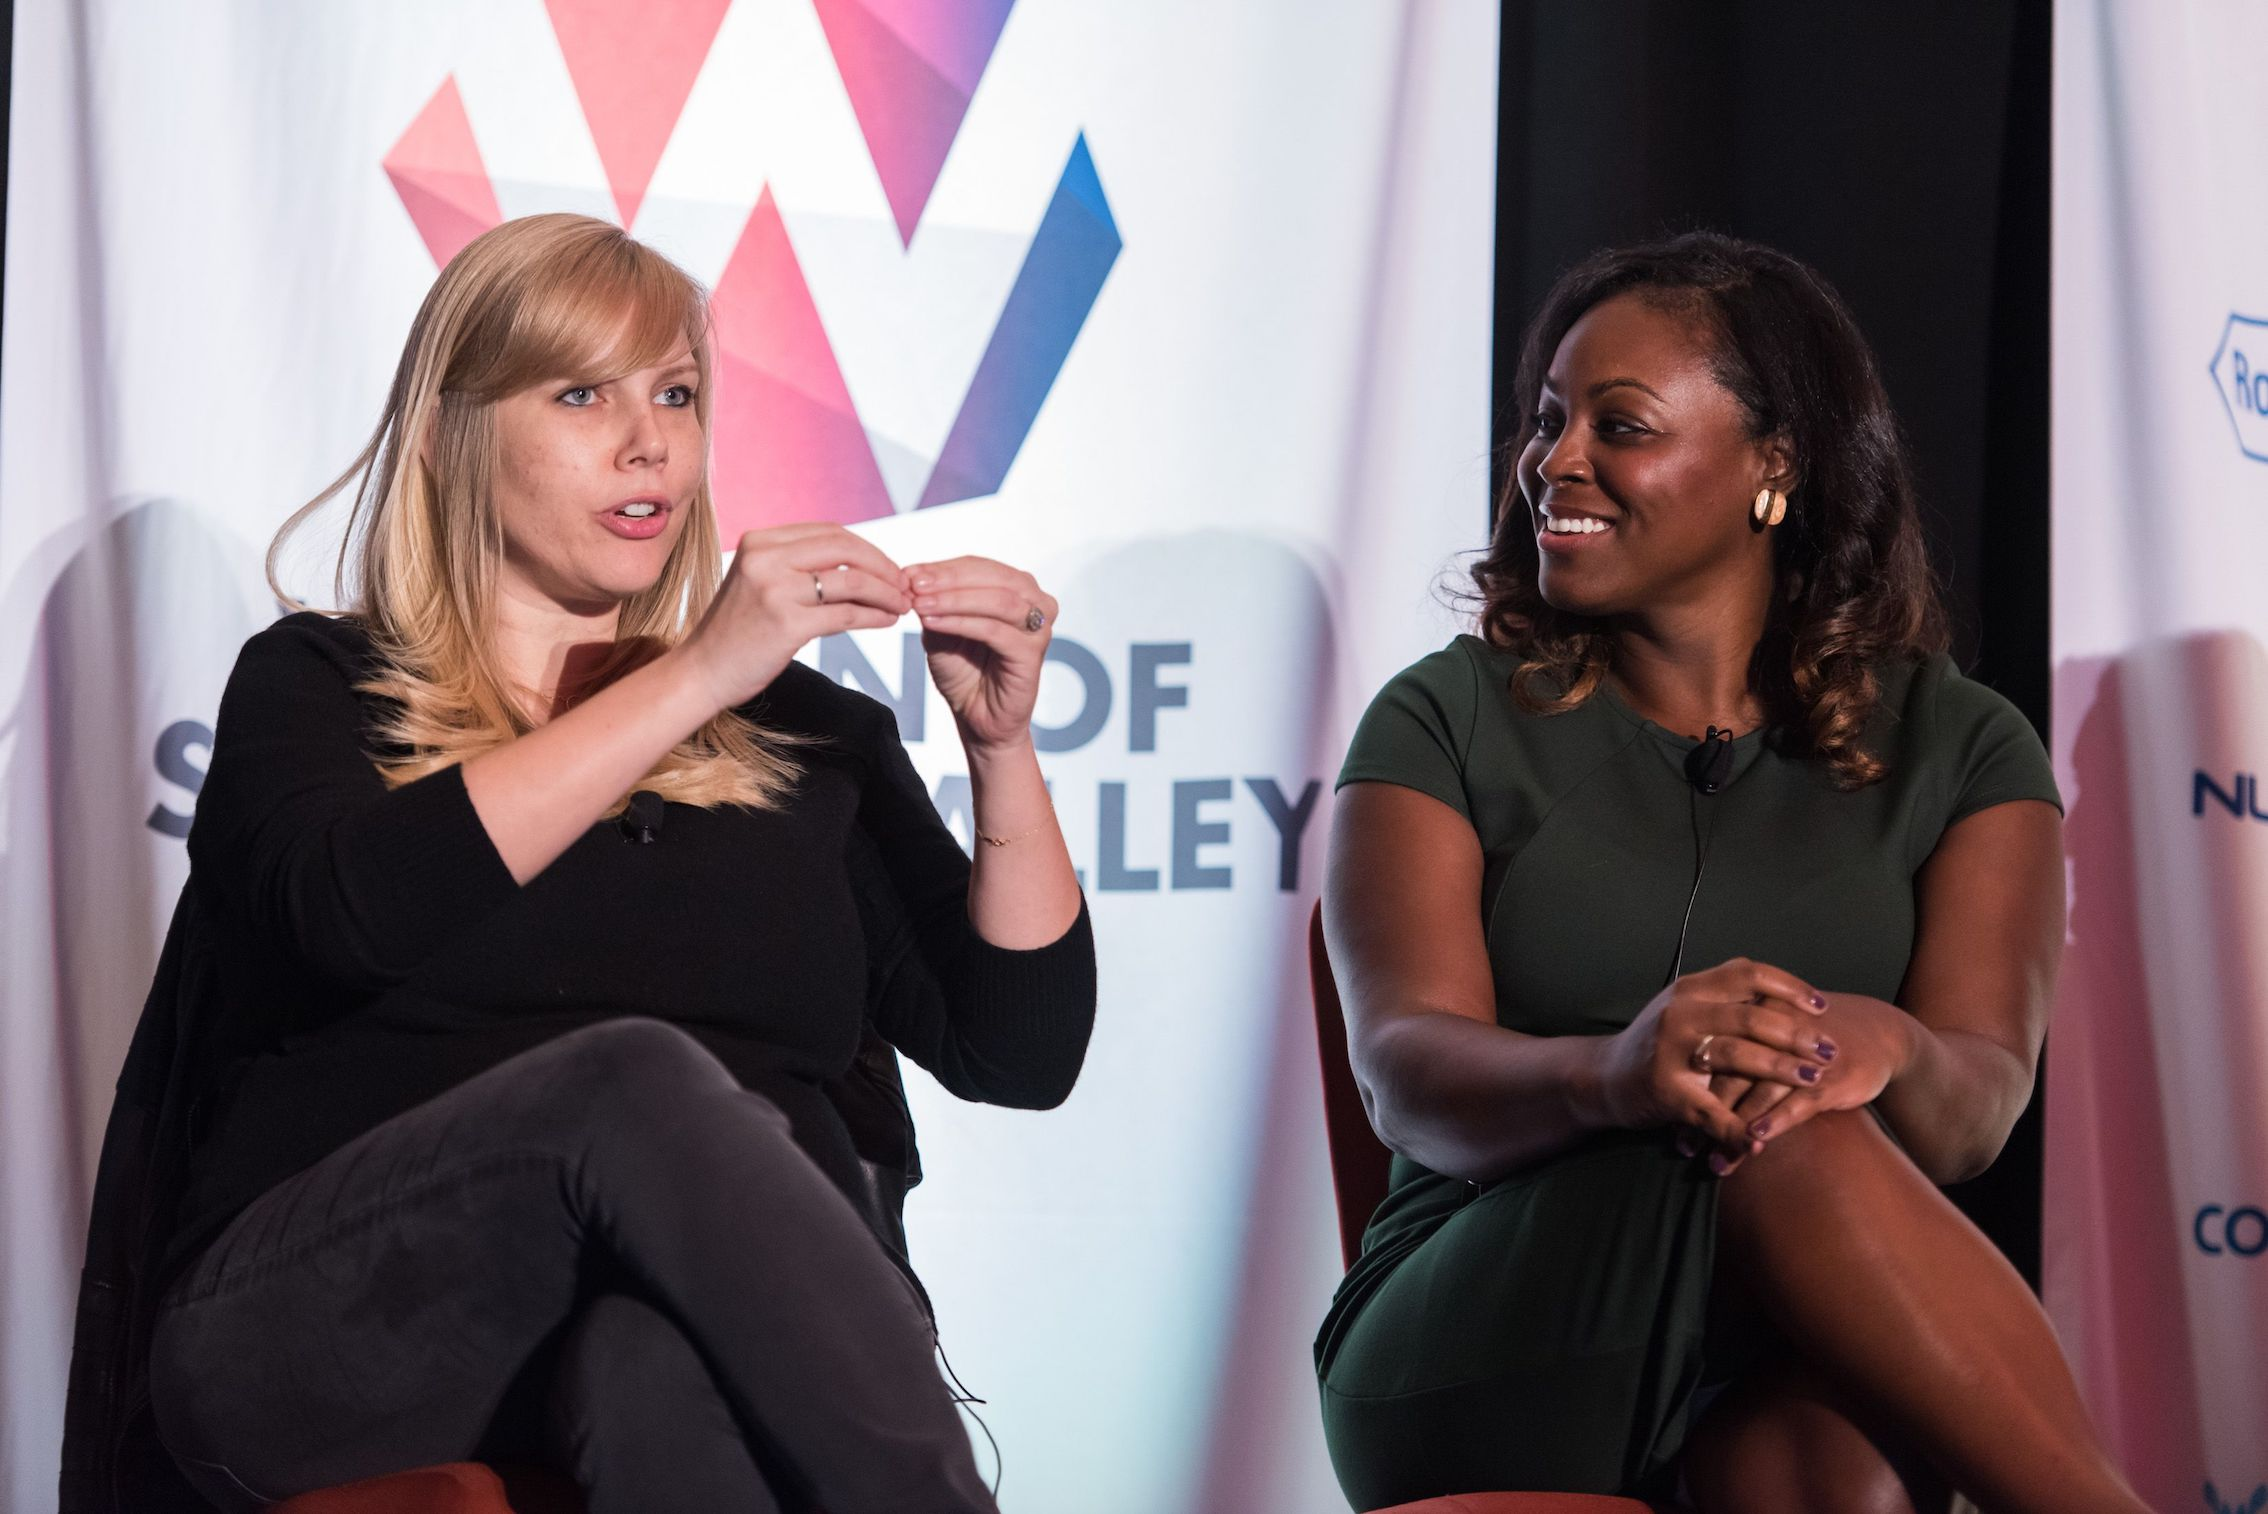 Panel at Women of Silicon Valley 2018 2